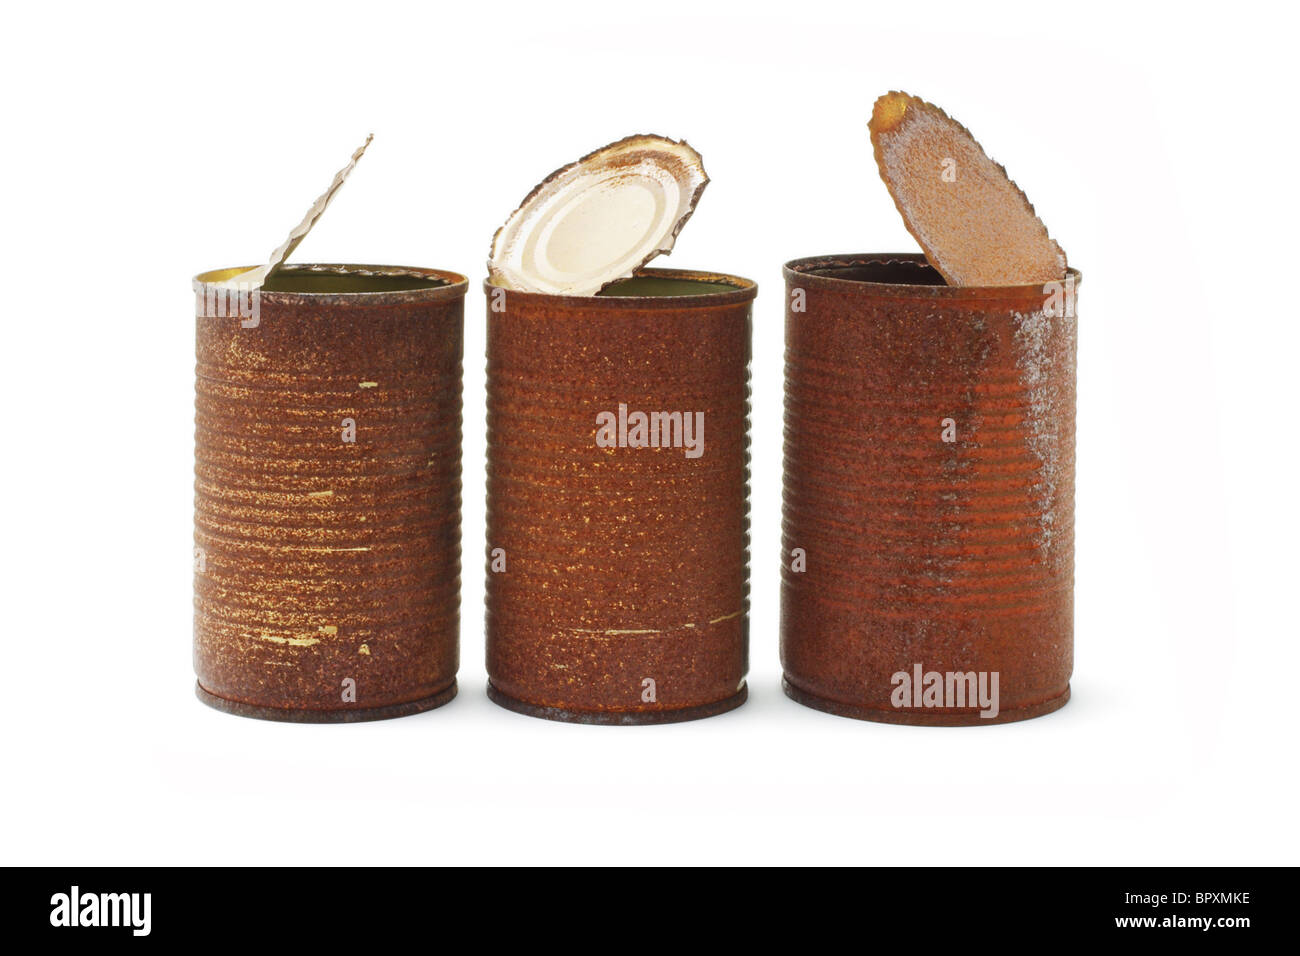 Rusty tin cans arranged on white background - Stock Image